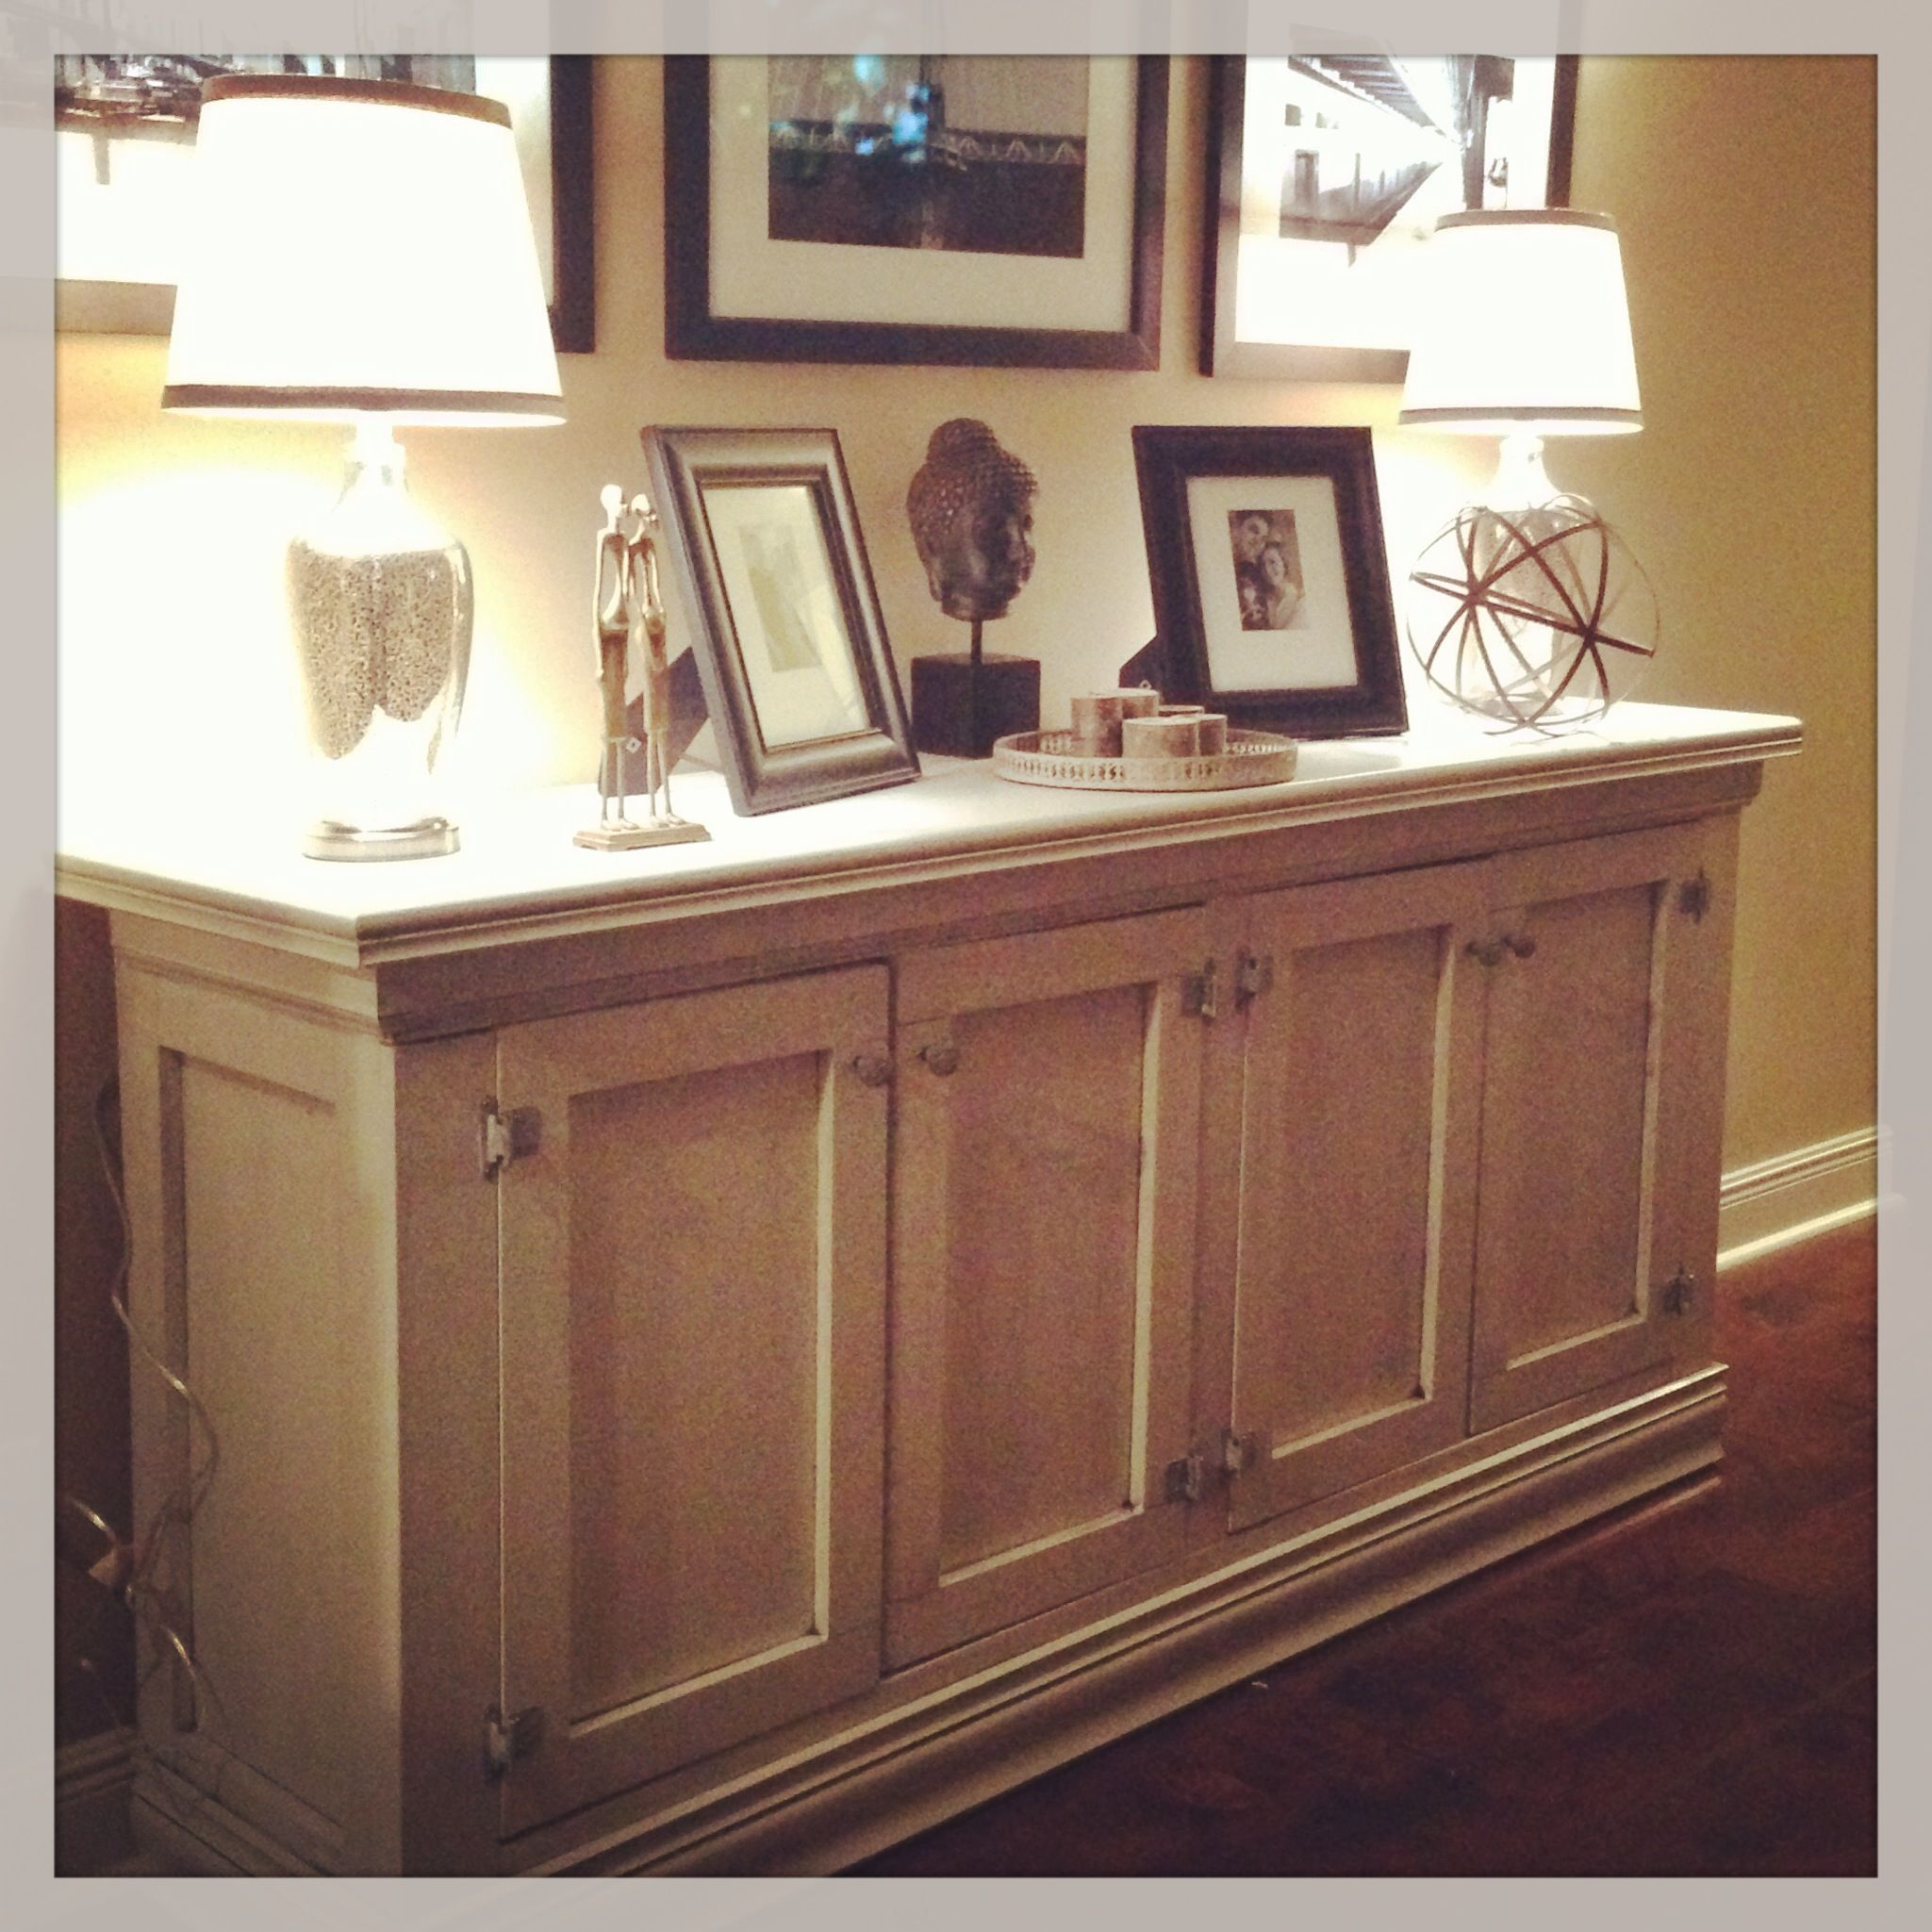 Living Room Buffet Cabinet Sofa Set Singapore Interior Buy Console Table Buffets And Sideboards Dining